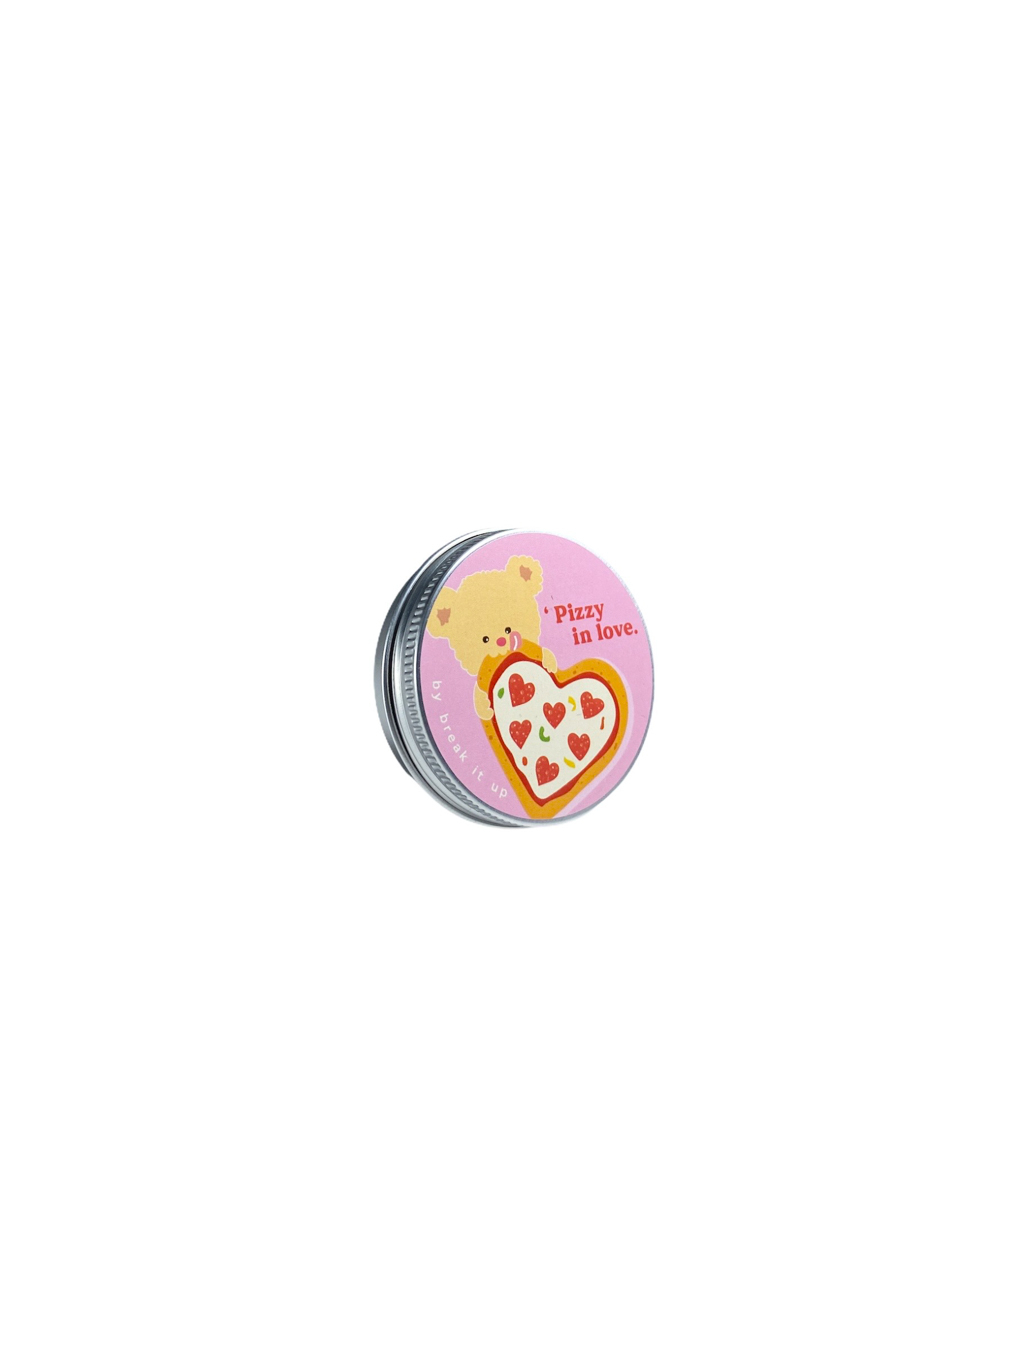 Candle - Pizzy In Love